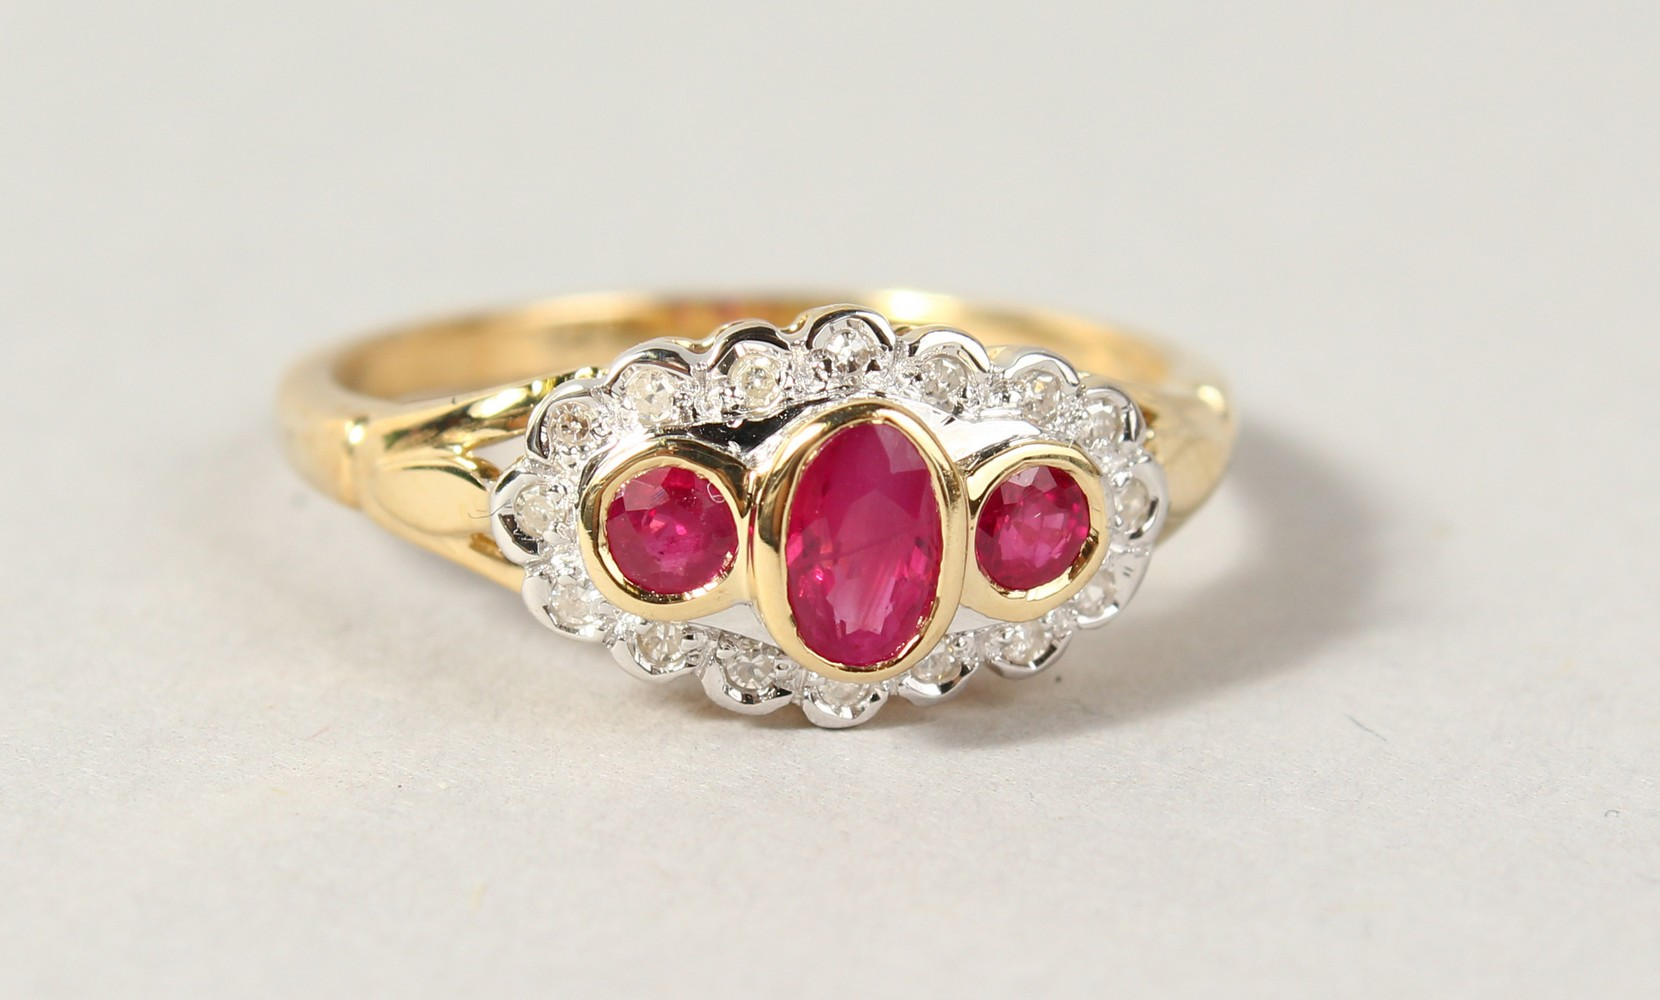 Lot 1767 - A 9CT GOLD, RUBY AND DIAMOND RING.